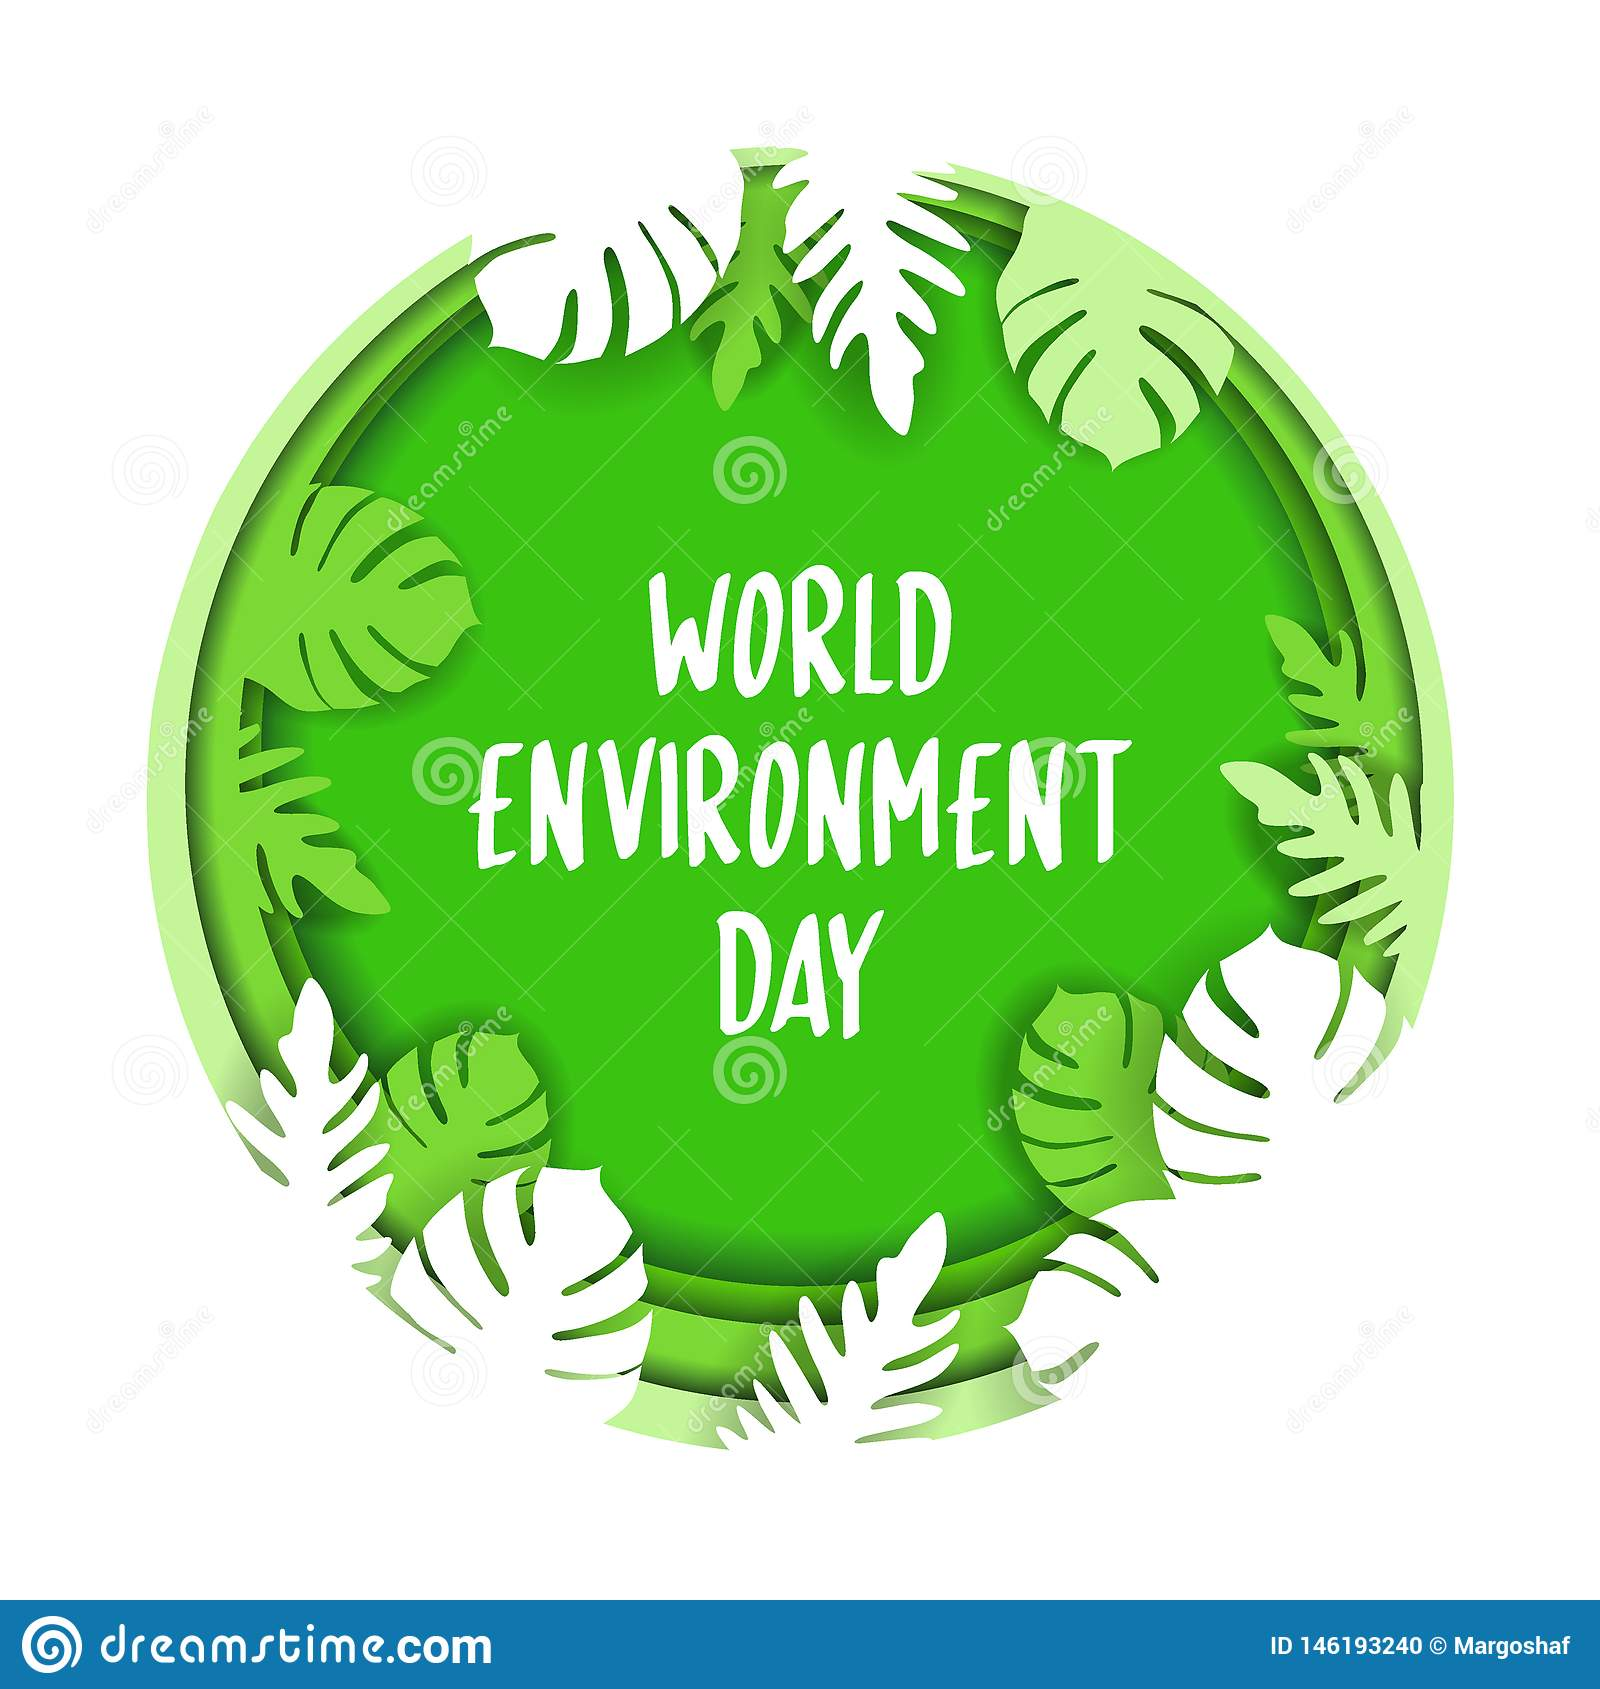 Creative Poster Or Banner Of World Environment Day. 3d paper cut eco friendly design. Vector illustration. Paper carving layer